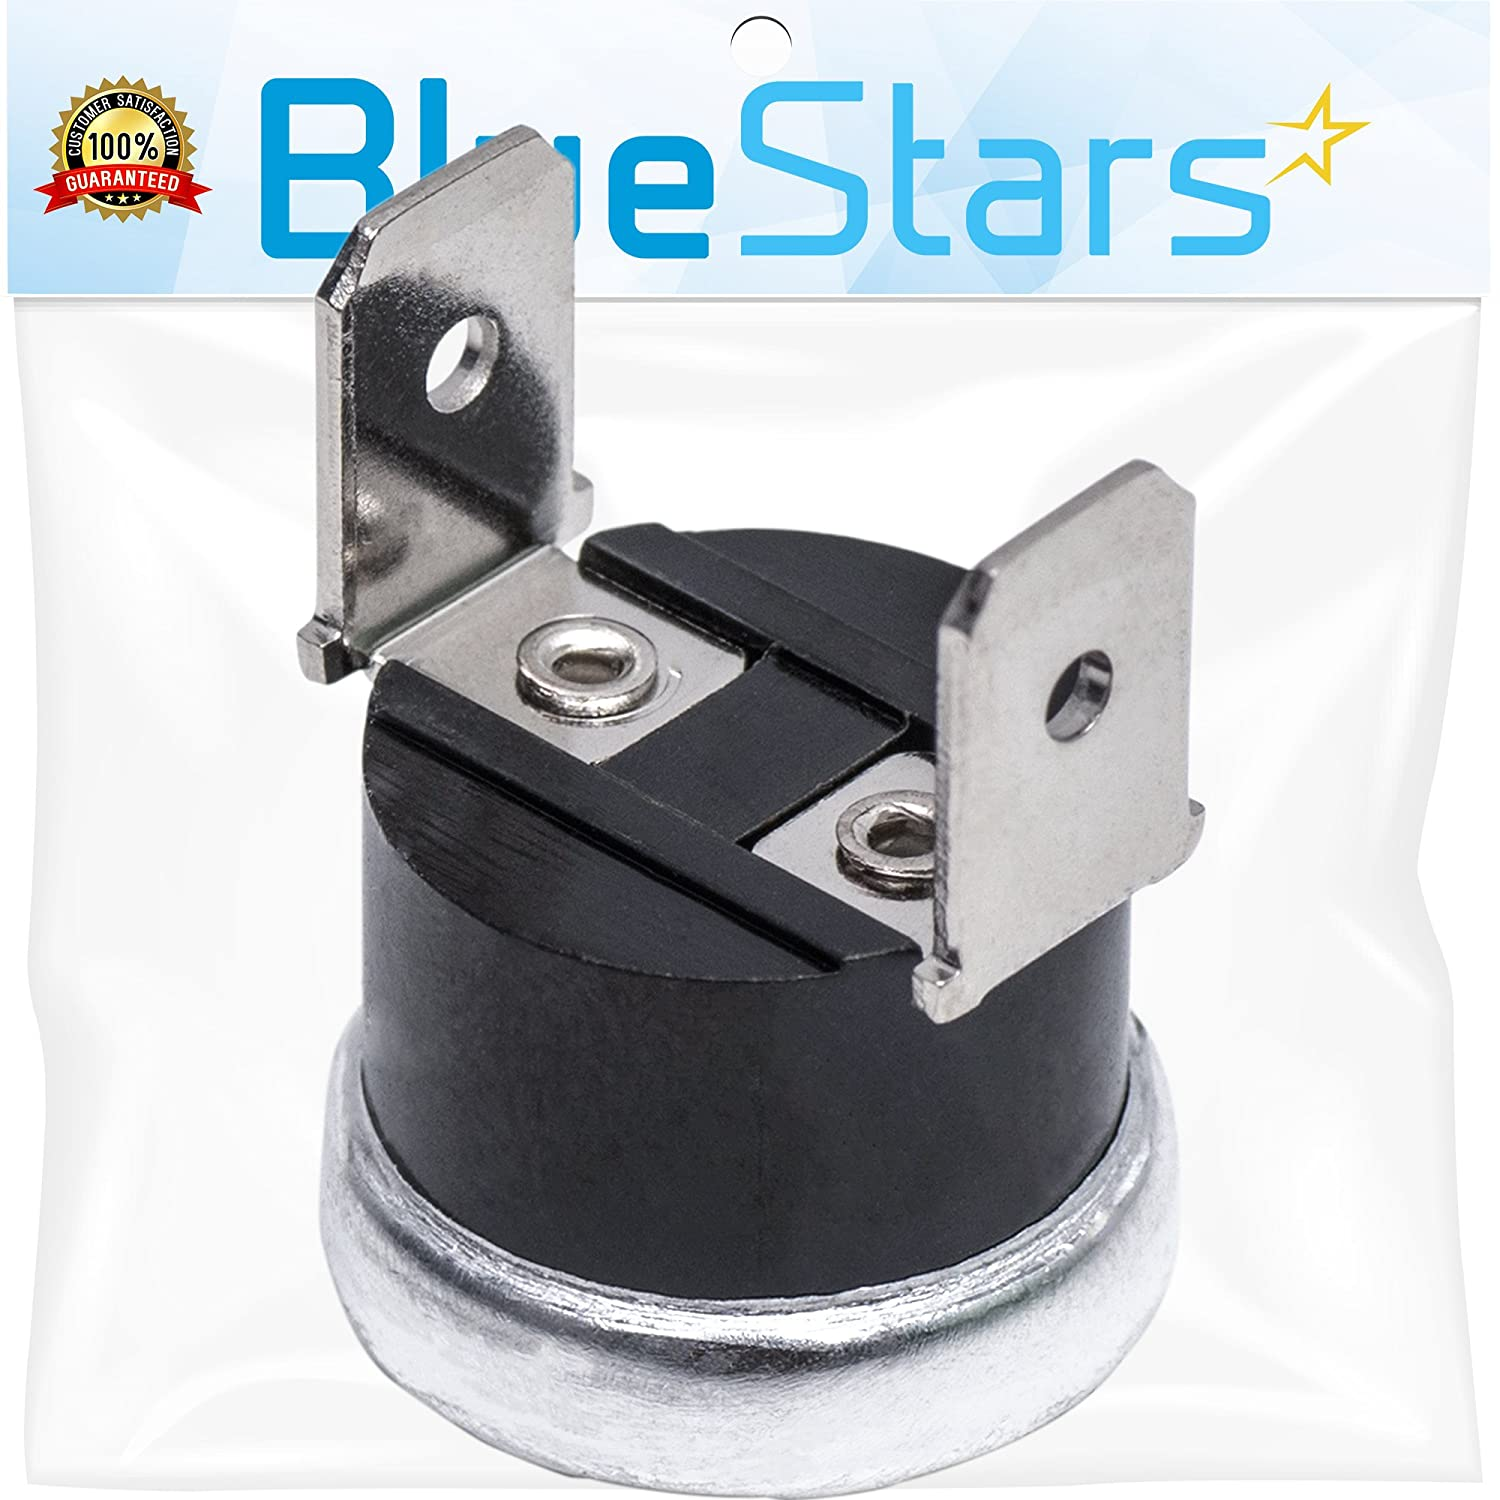 661566 Dishwasher High Limit Thermostat Replacement Part by Blue Stars – Exact Fit For Whirlpool & Kenmore Dishwashers – Replaces WP661566 3371618 W10339474 AP6010246 PS11743423